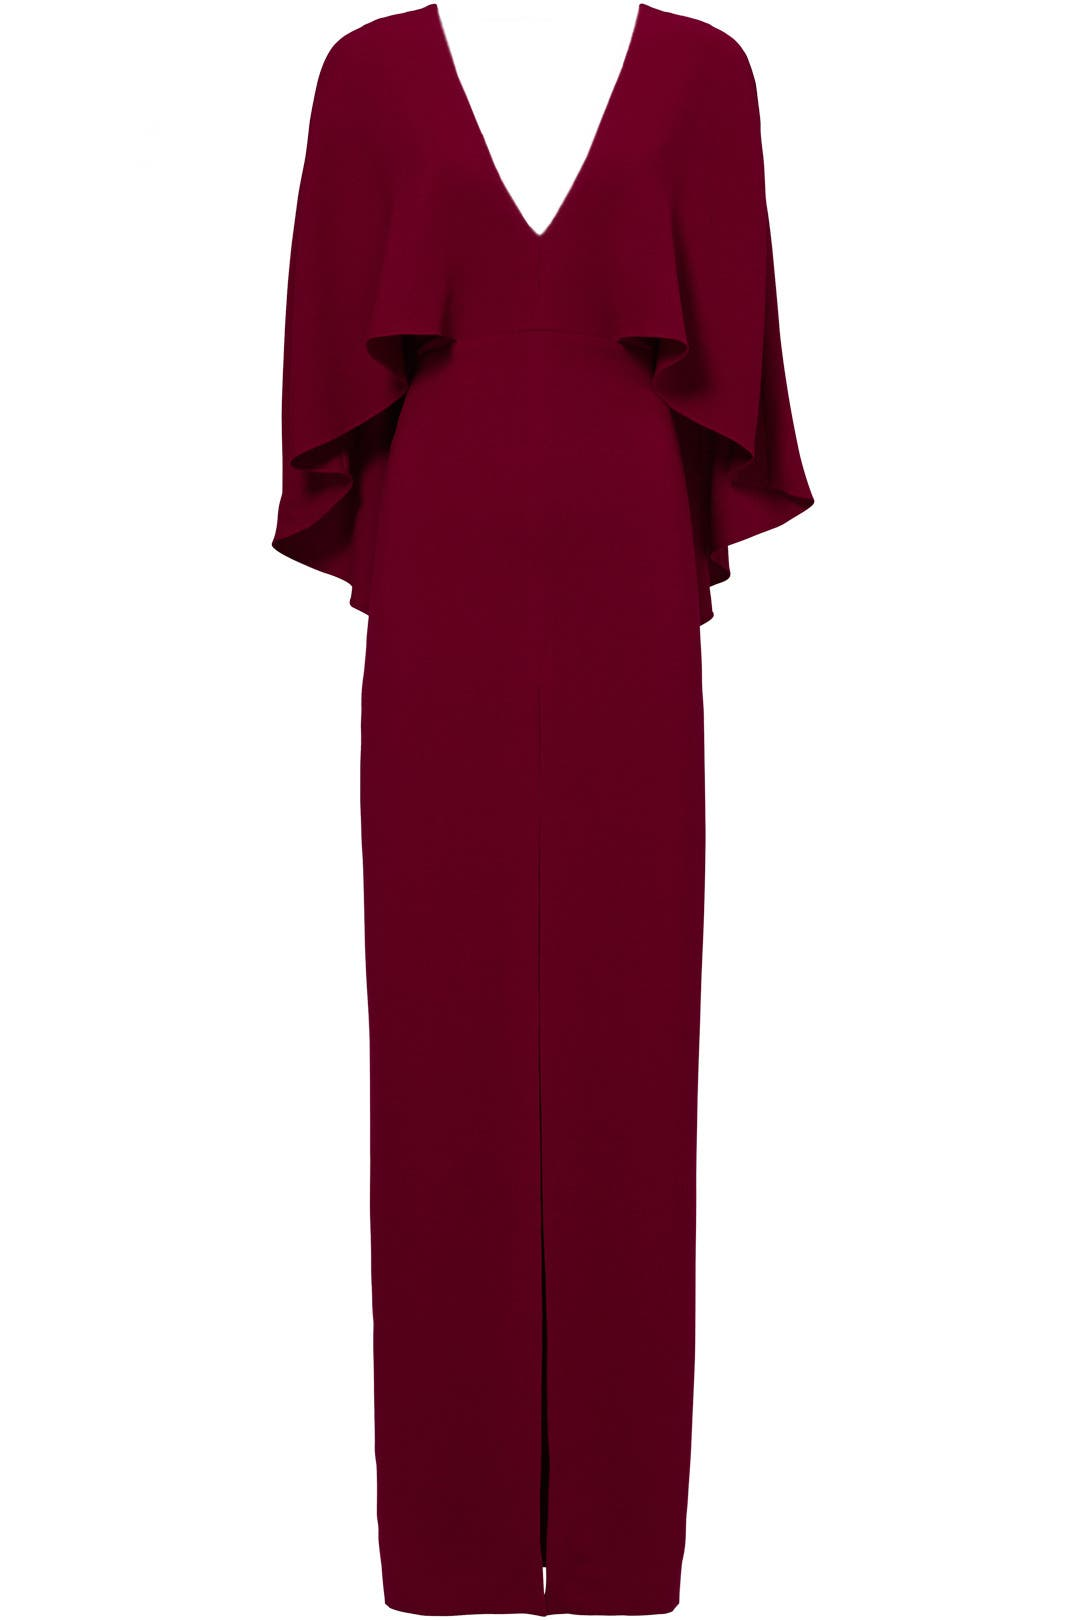 Dahlia Cape Gown by Halston Heritage for $70 - $80 | Rent the Runway